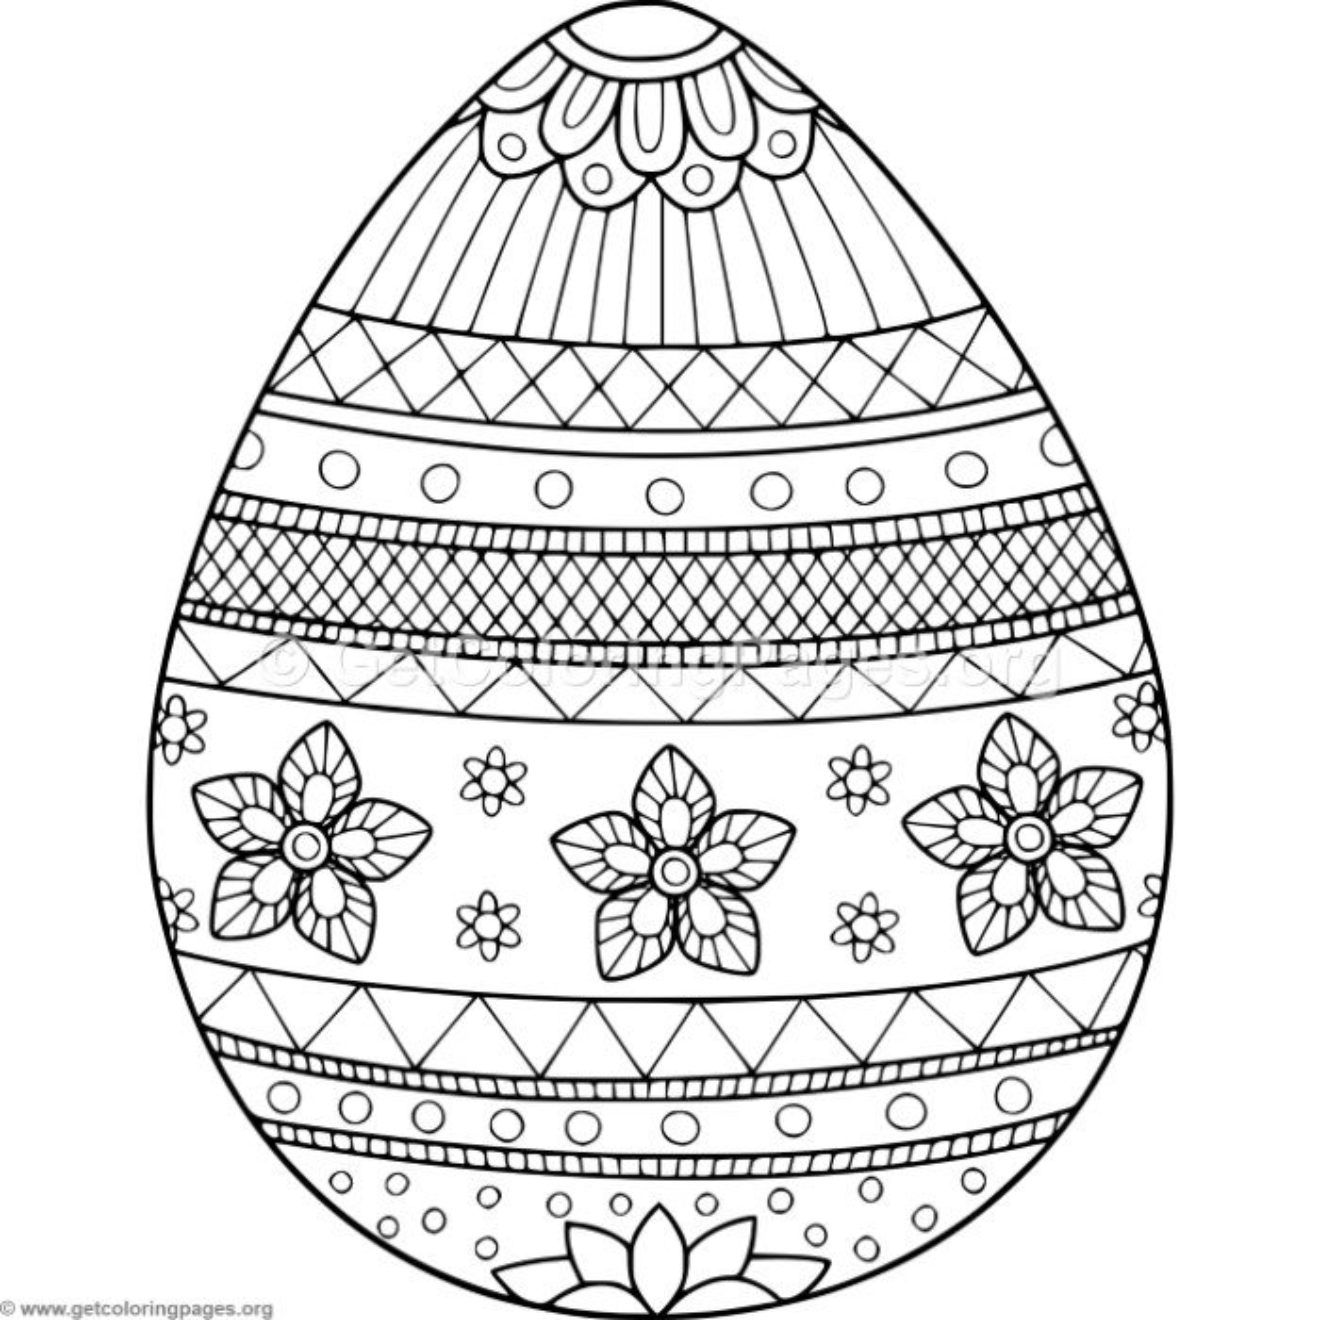 Easter Coloring Pages Getcoloringpages Org Easter Egg Coloring Pages Coloring Eggs Coloring Easter Eggs